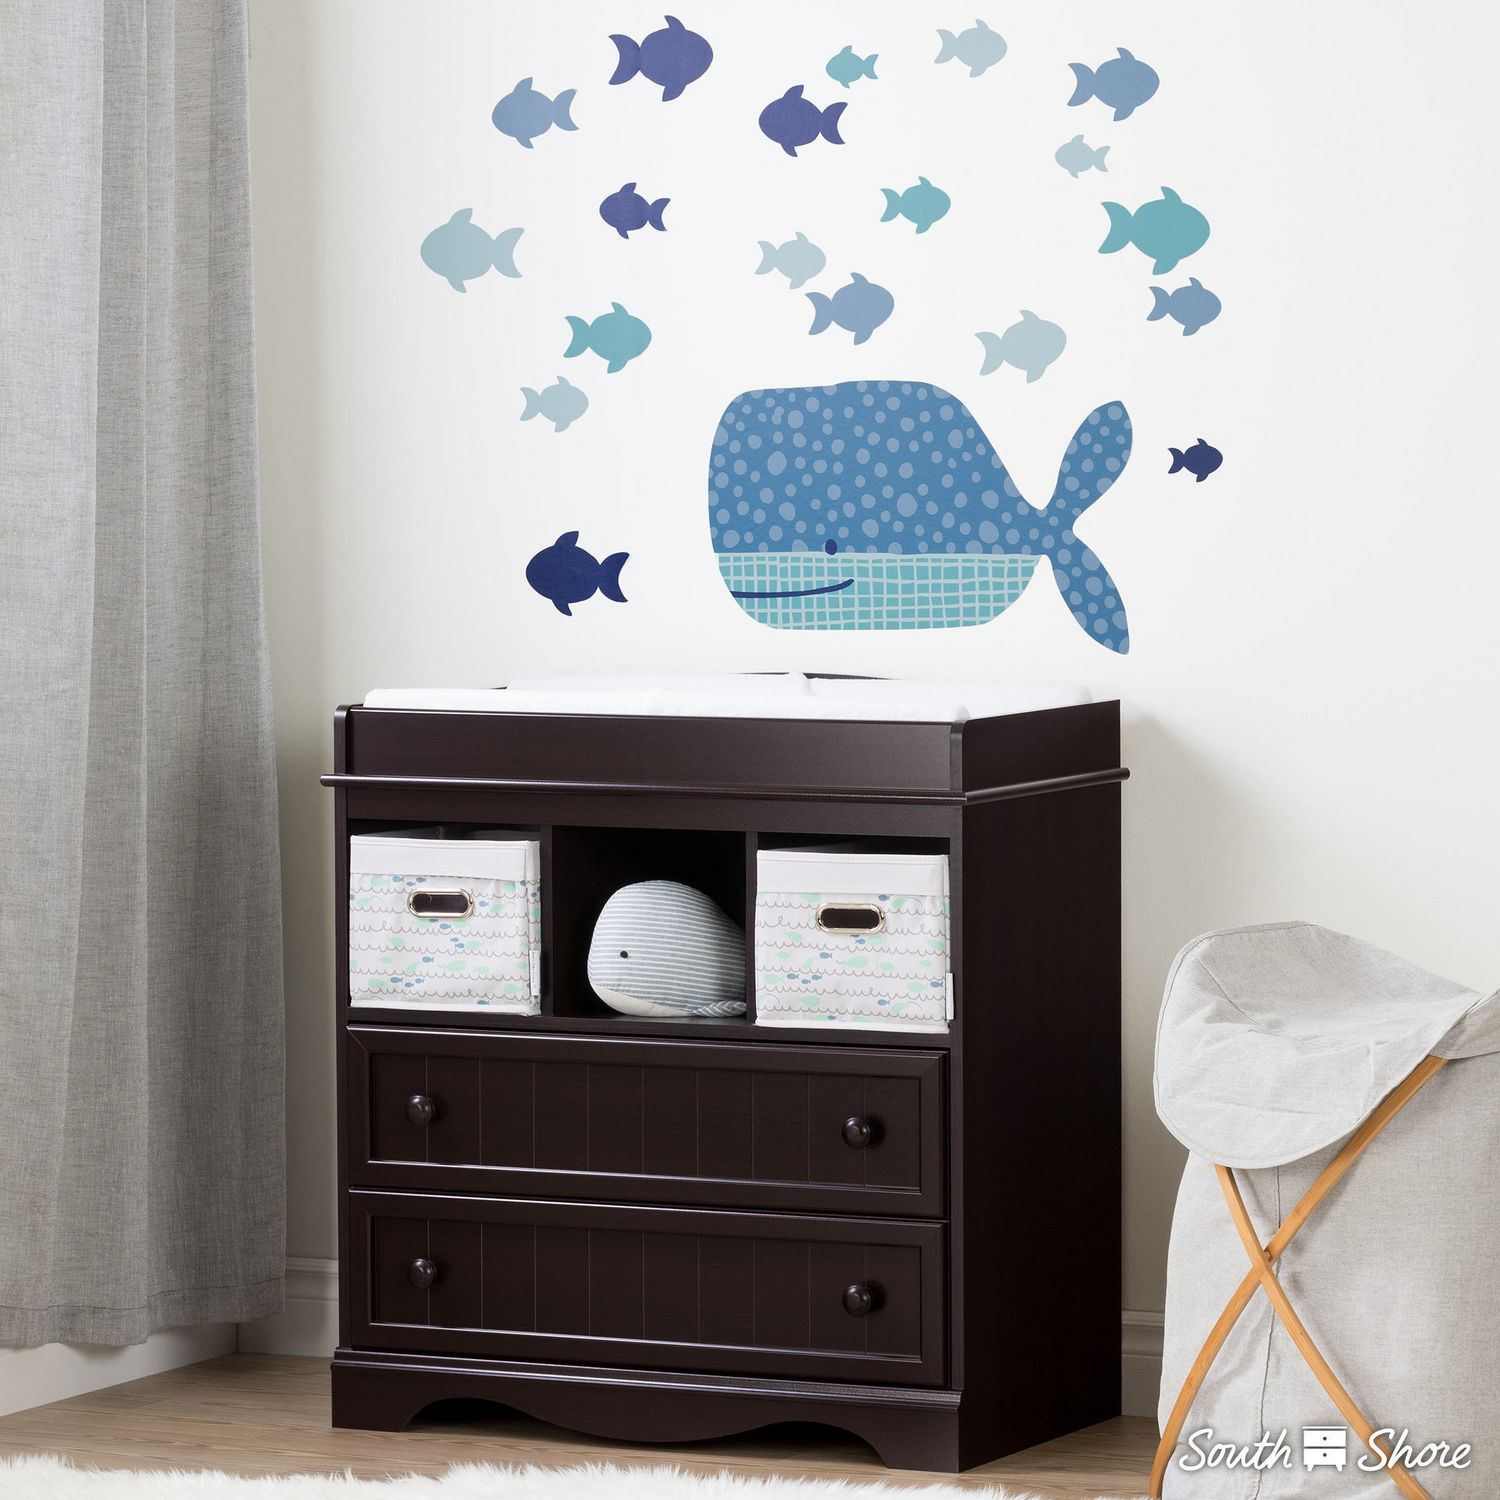 South shore dreamit blue little whale wall decals walmart canada amipublicfo Gallery